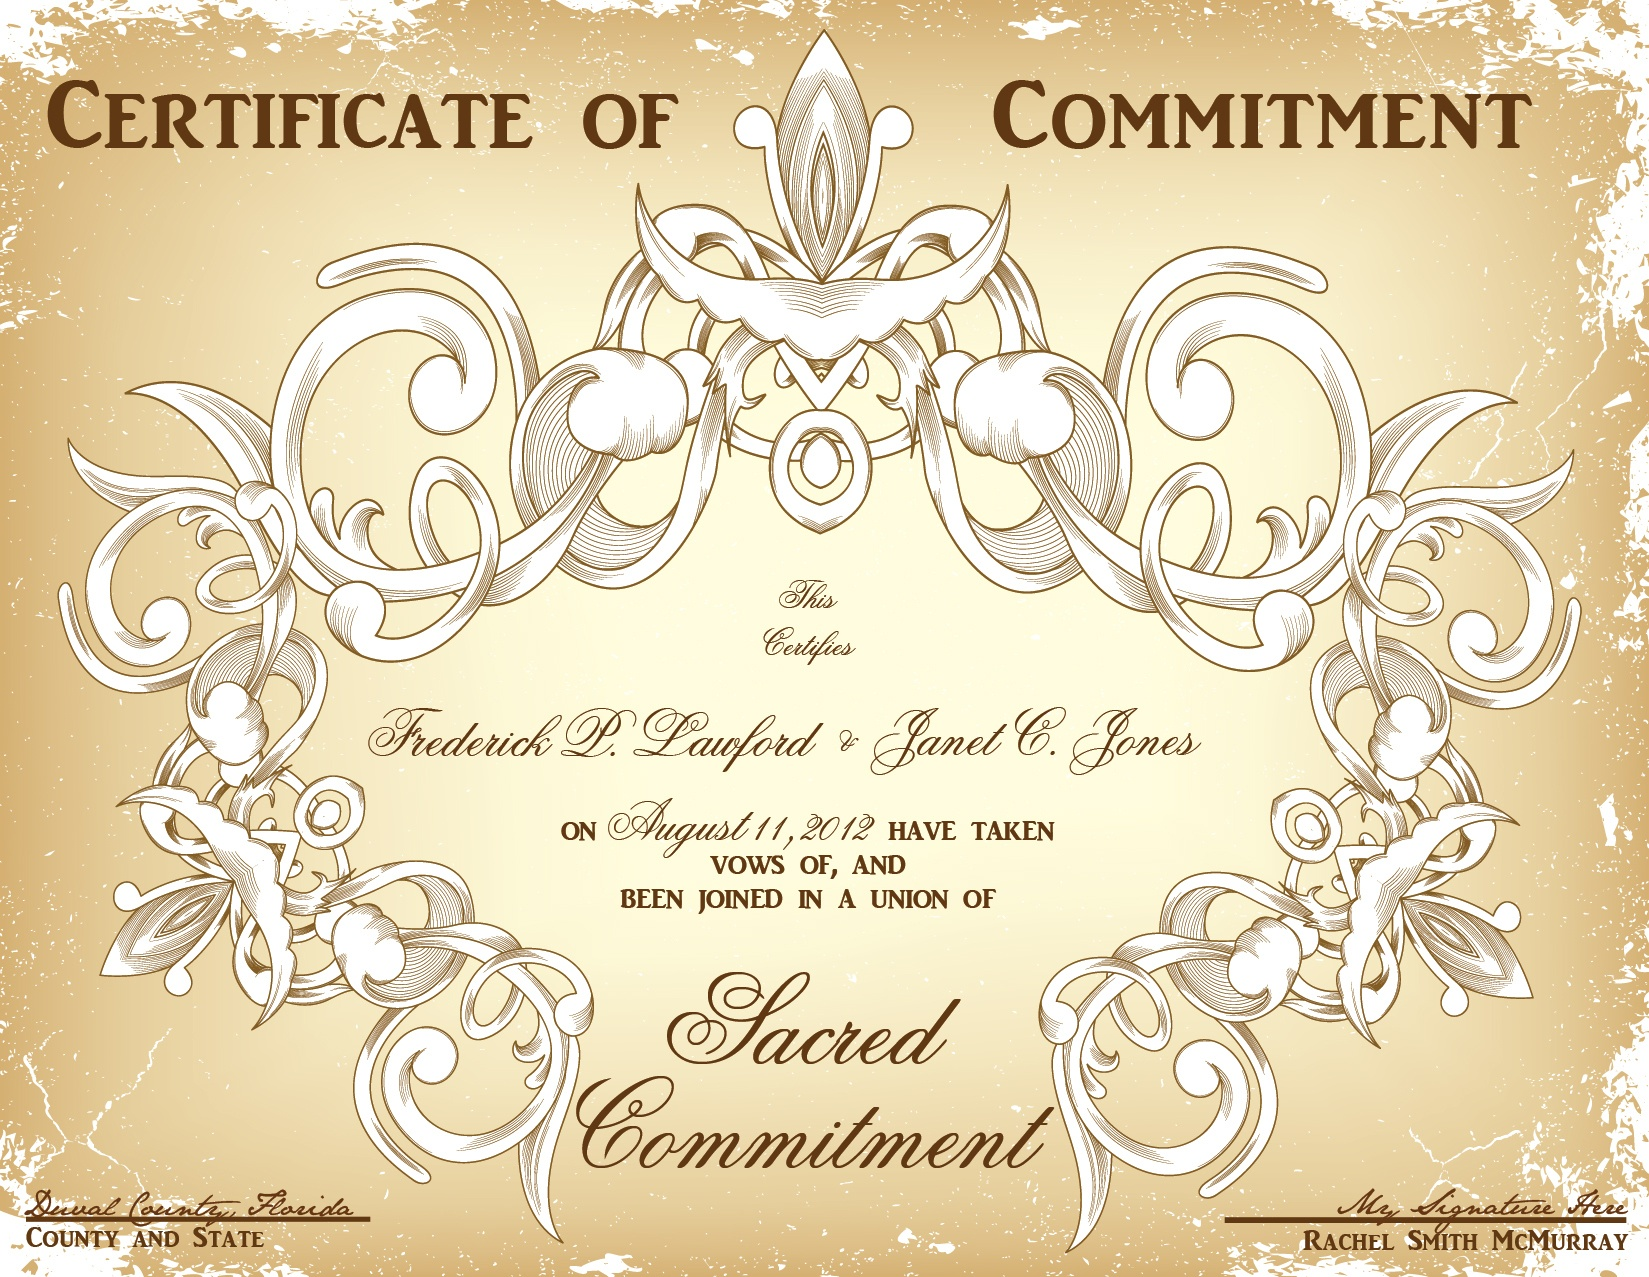 Commitment Ceremony Certificate Design Choices-That Wedding Lady - Commitment Certificate Free Printable